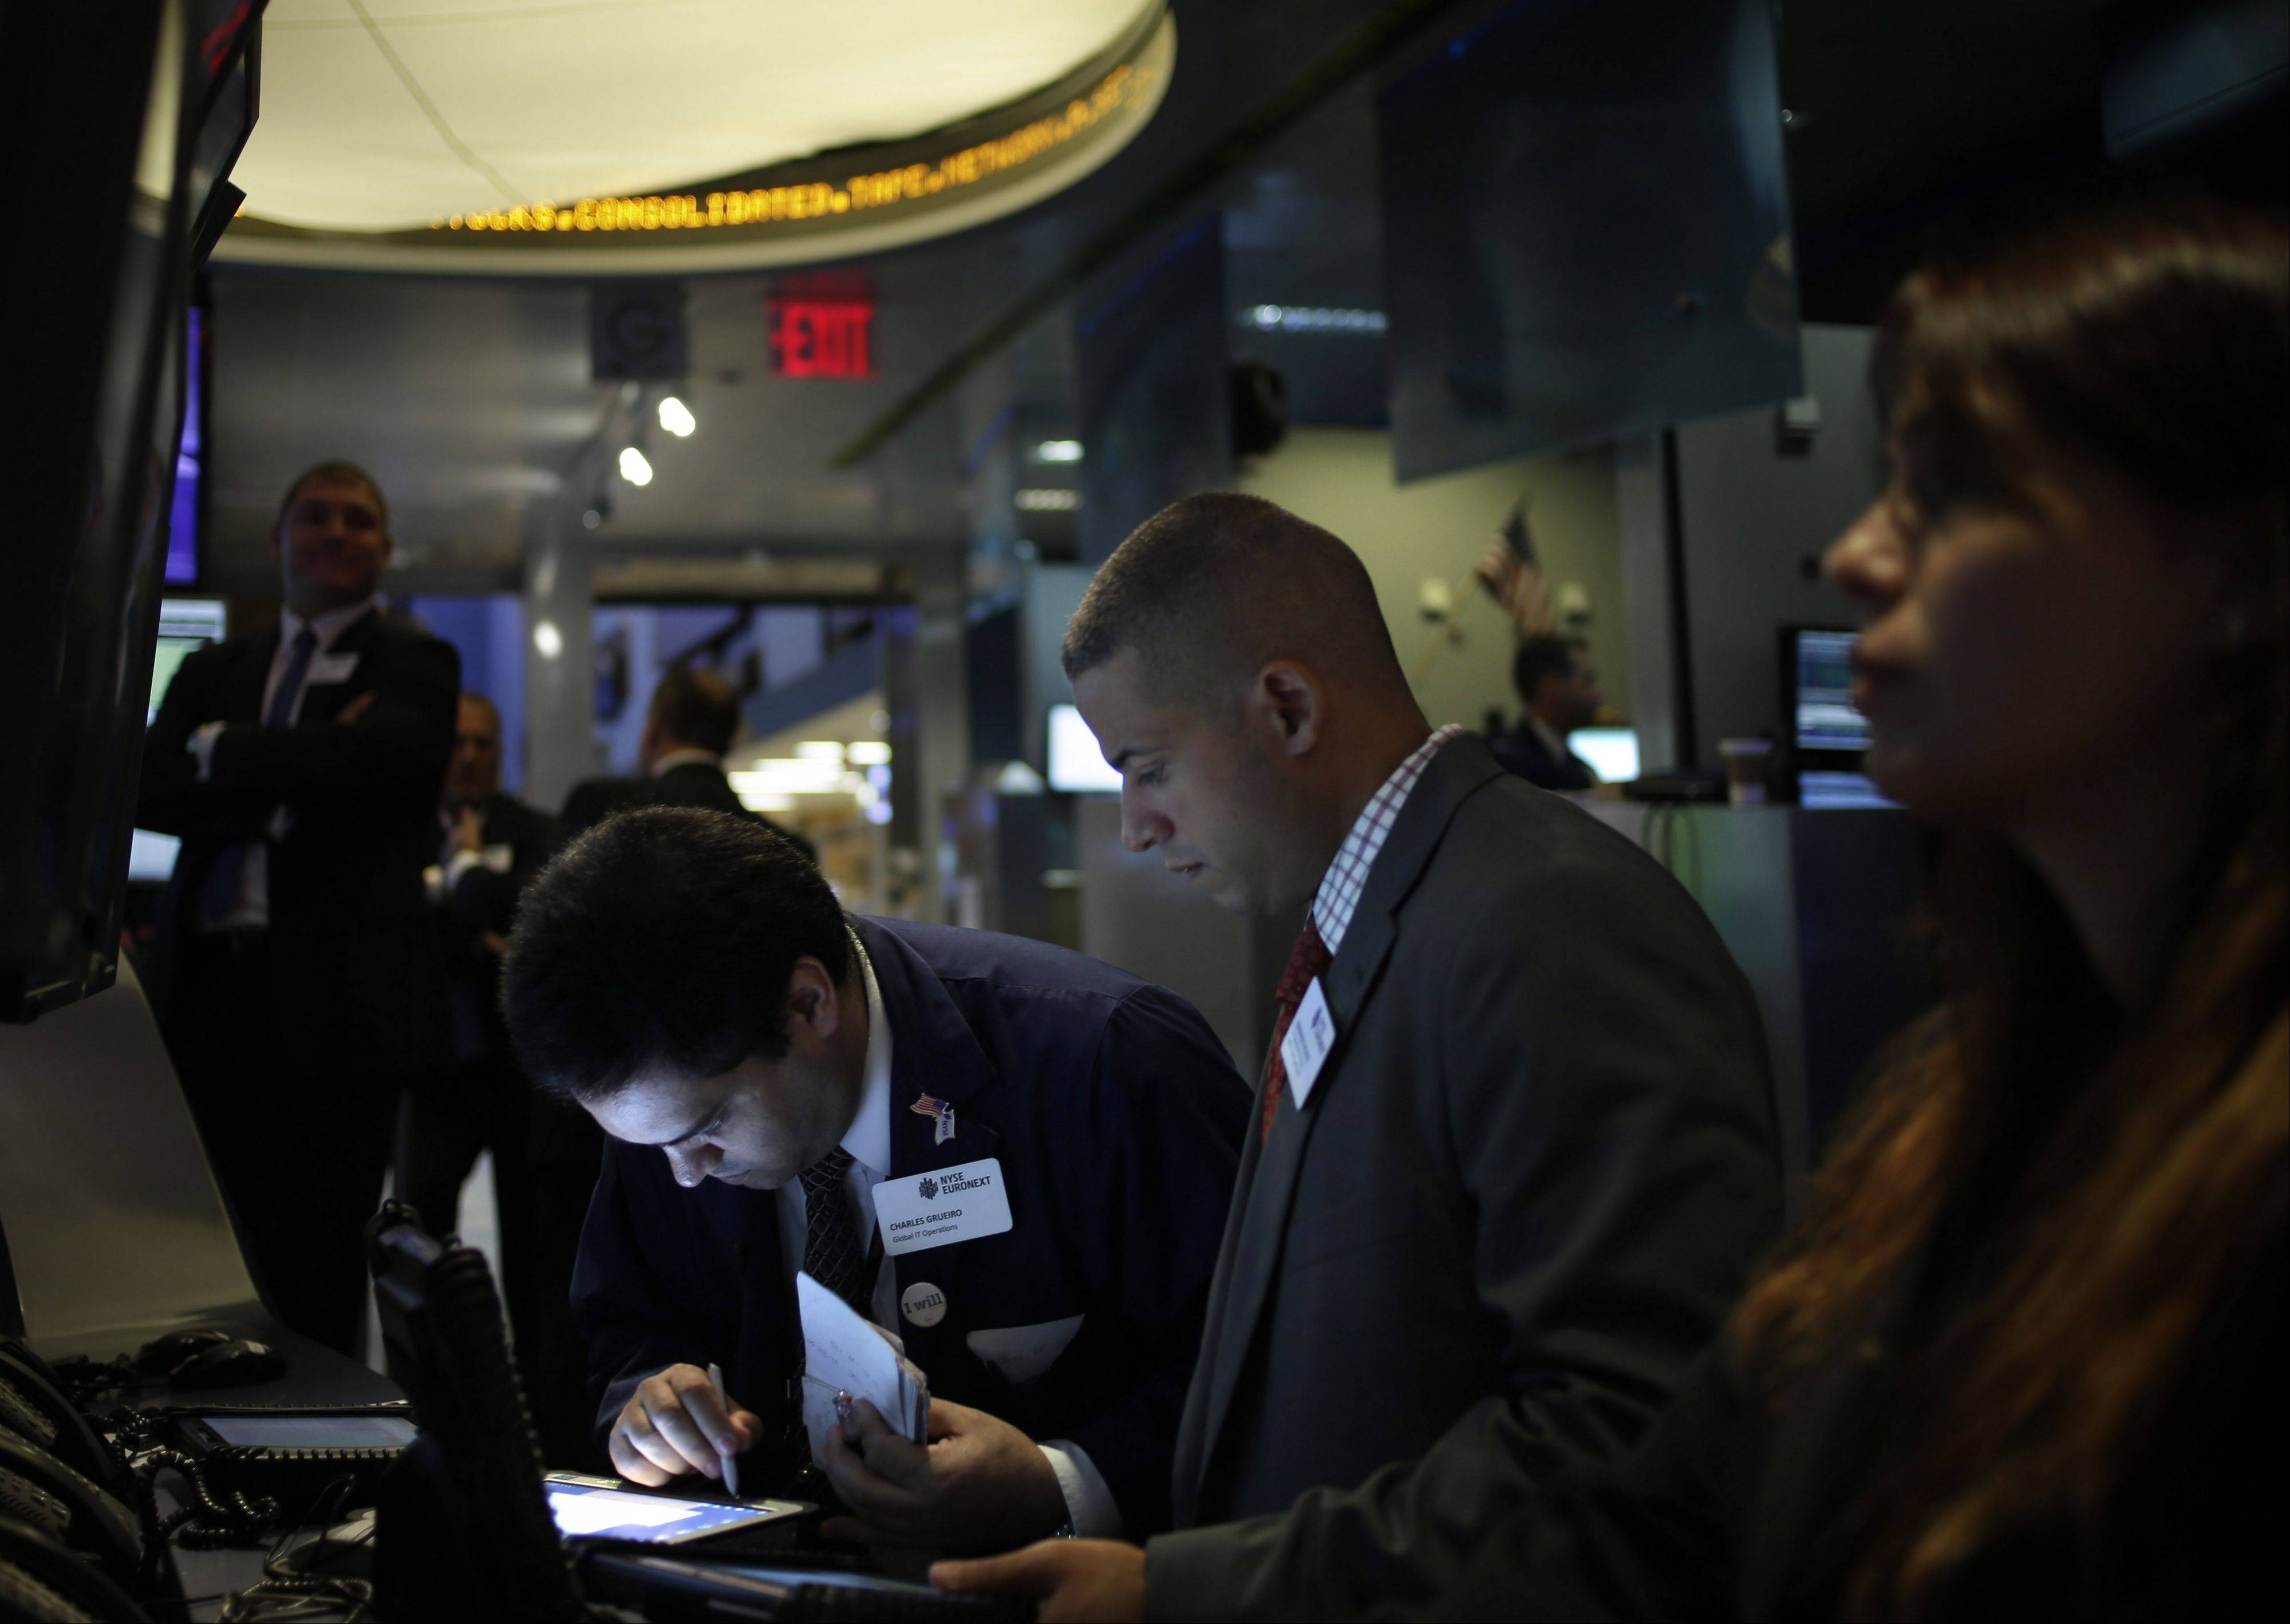 U.S. stocks fell, halting a seven- day win streak for the Standard & Poor�s 500 Index, as materials producers slid amid growing concern over Syria and investors weighed the prospects for Federal Reserve stimulus cuts.